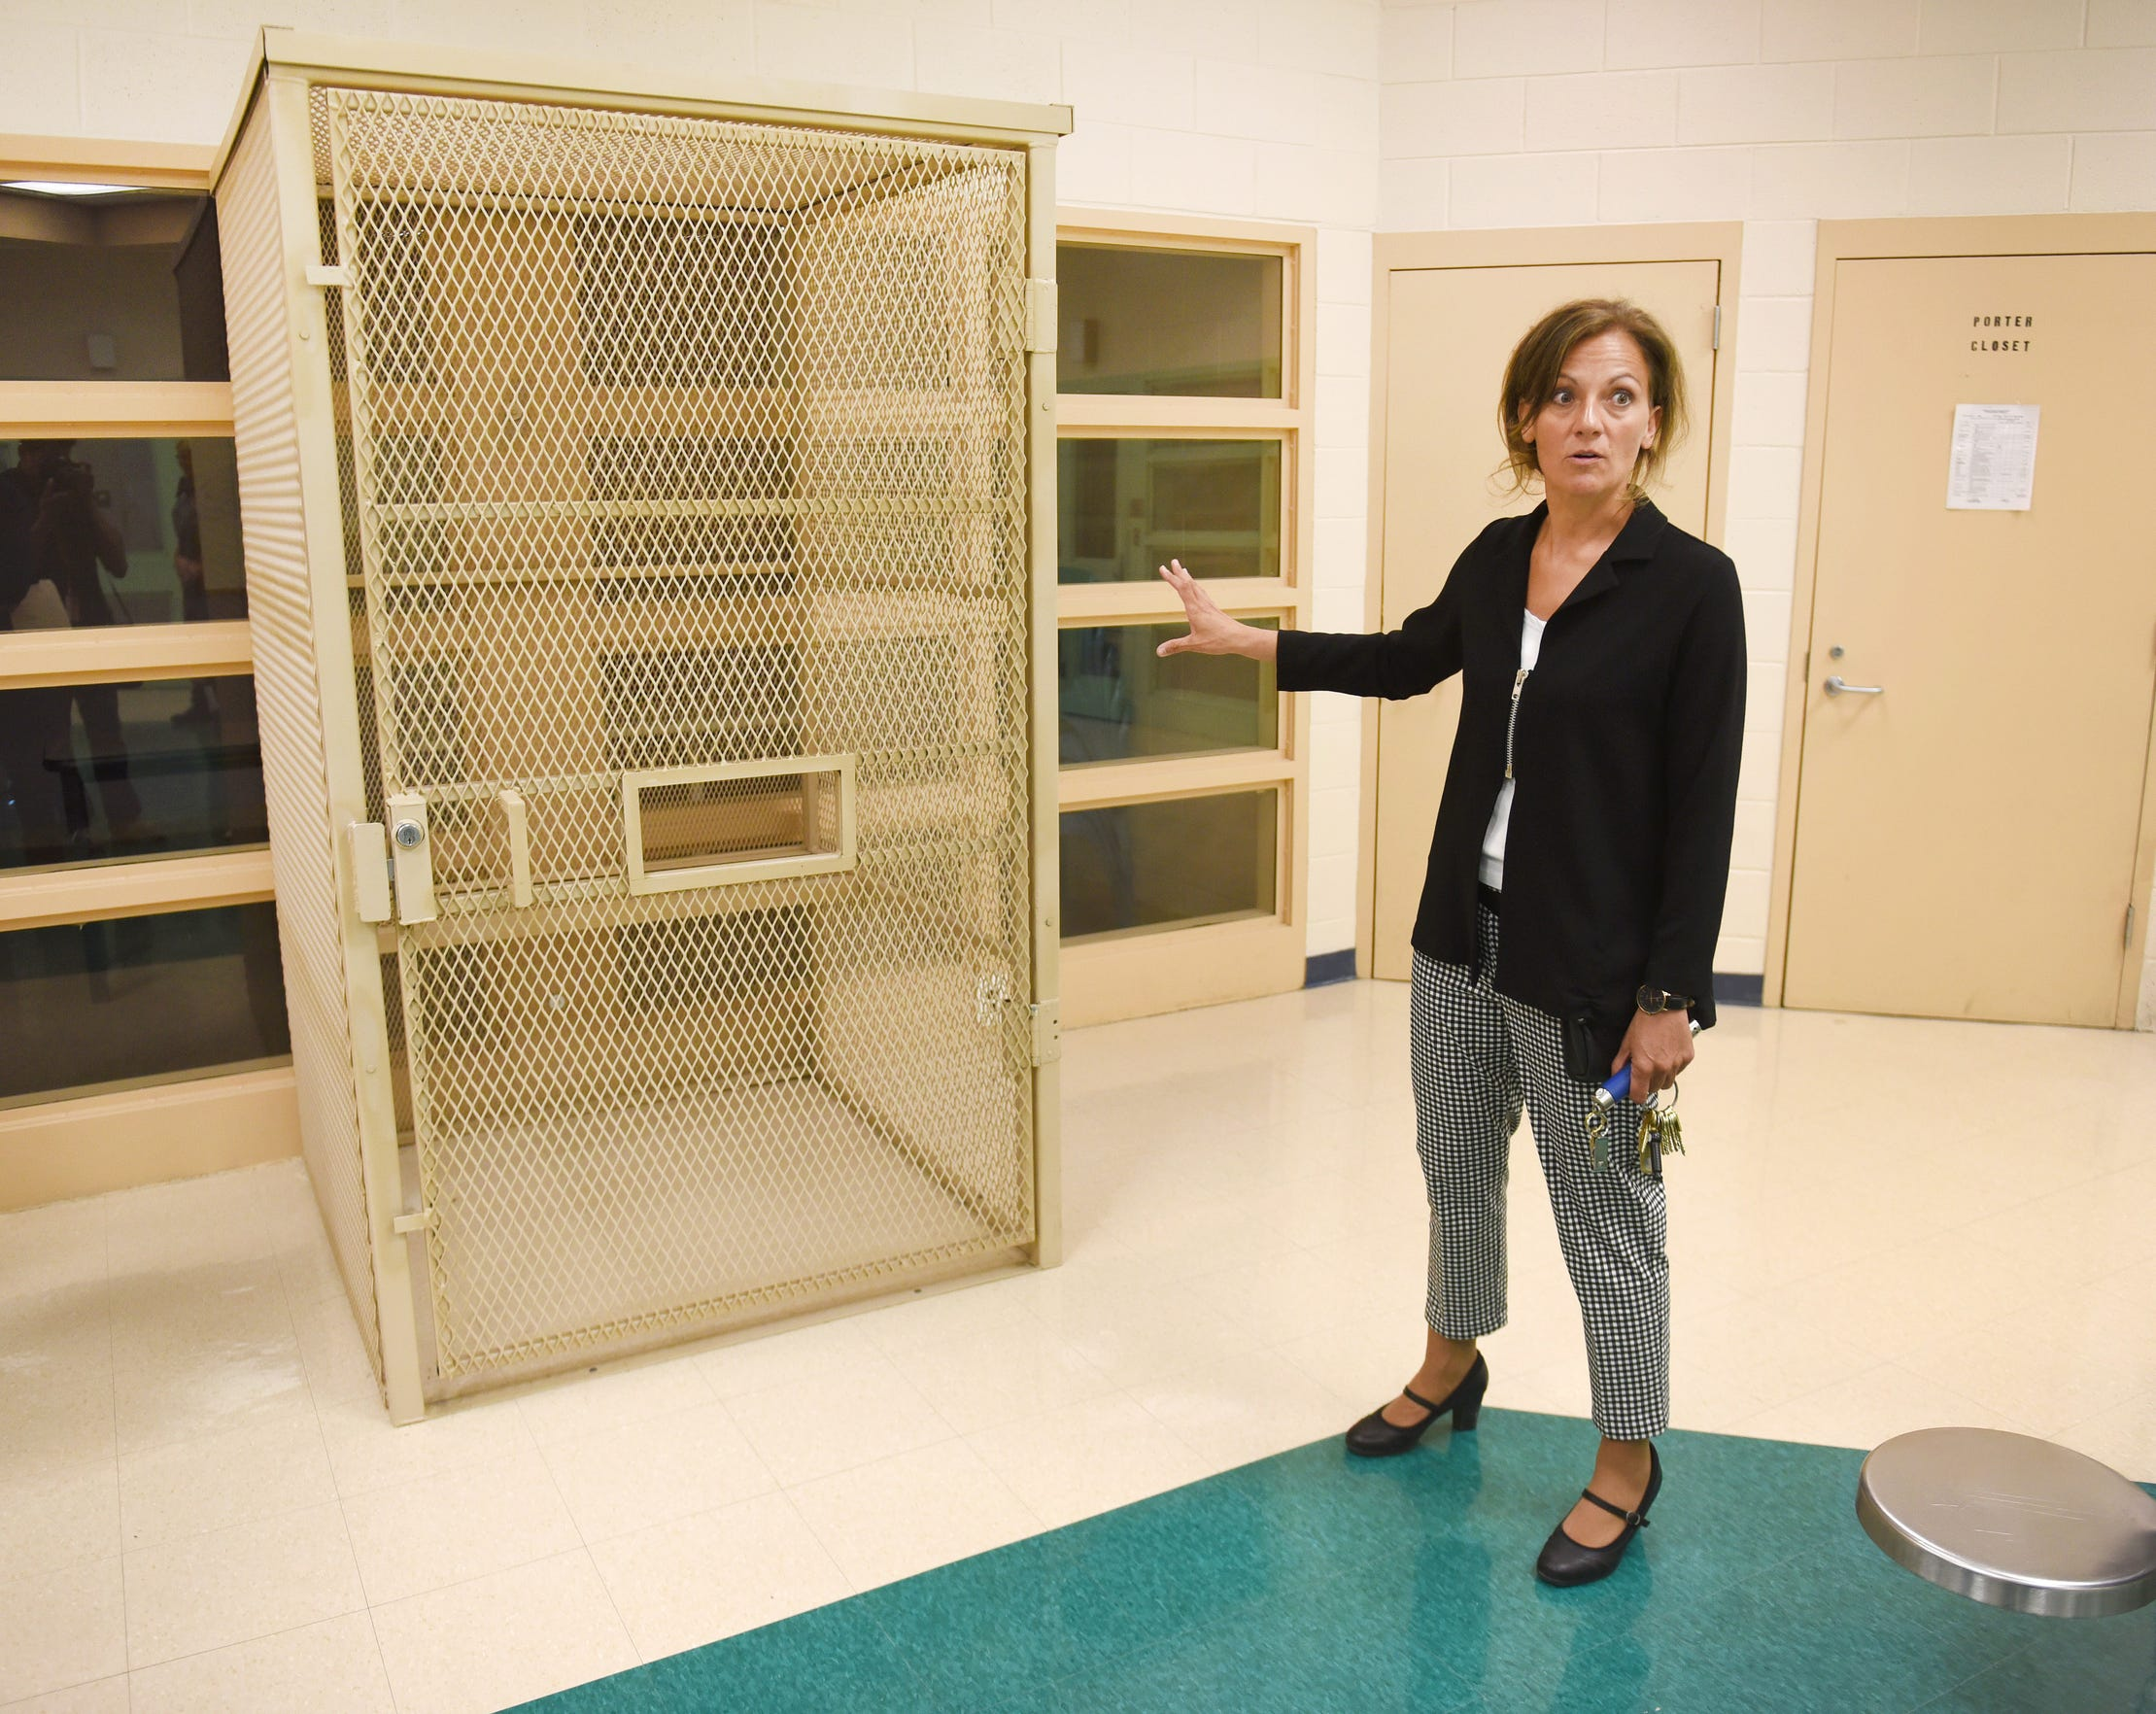 Warden Jodi DeAngelo shows a metal cage, or therapeutic module, that contains a bench for prisoners to sit on during therapy sessions.